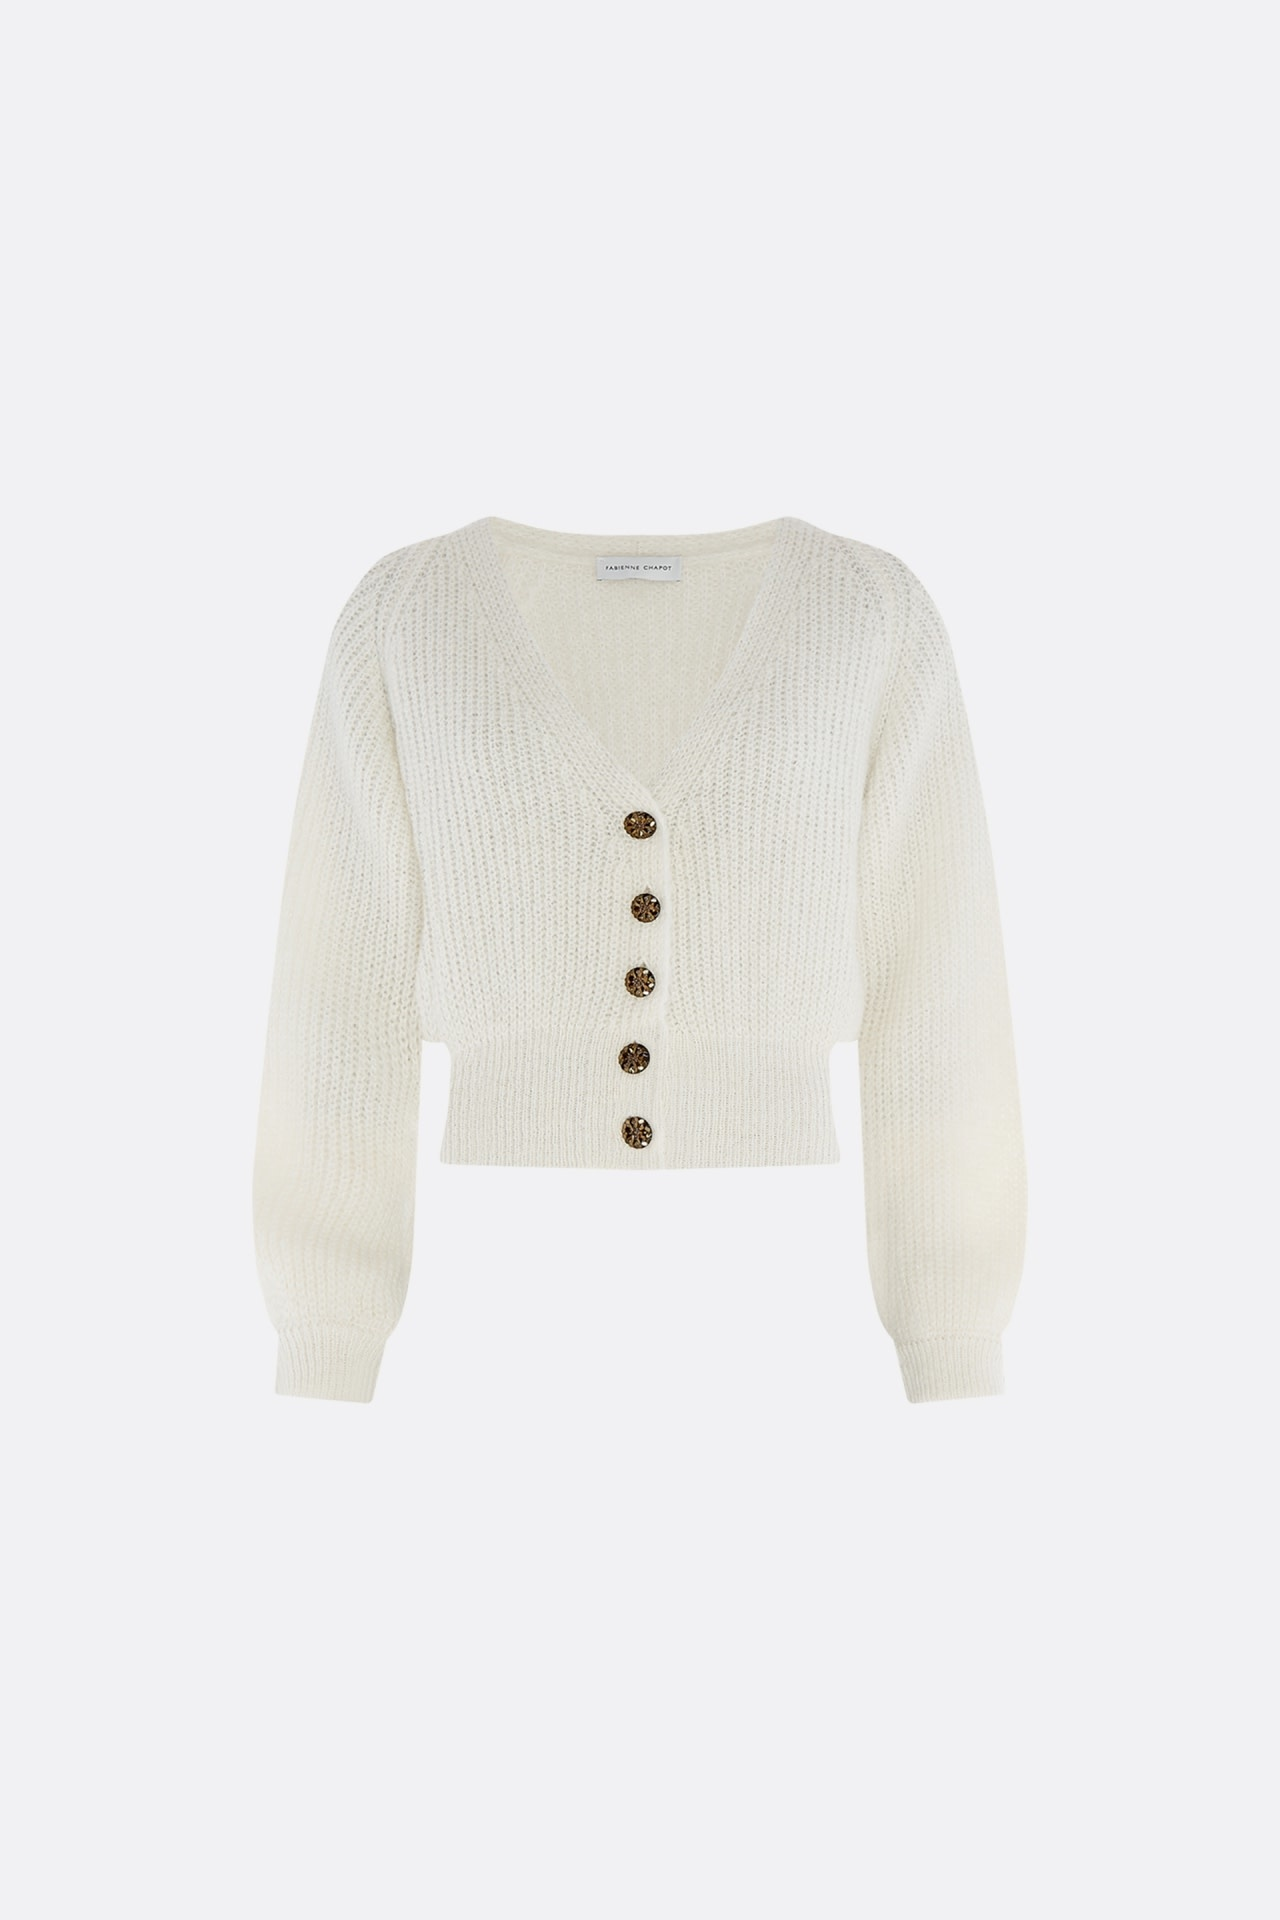 Starry cardigan offwhite-1